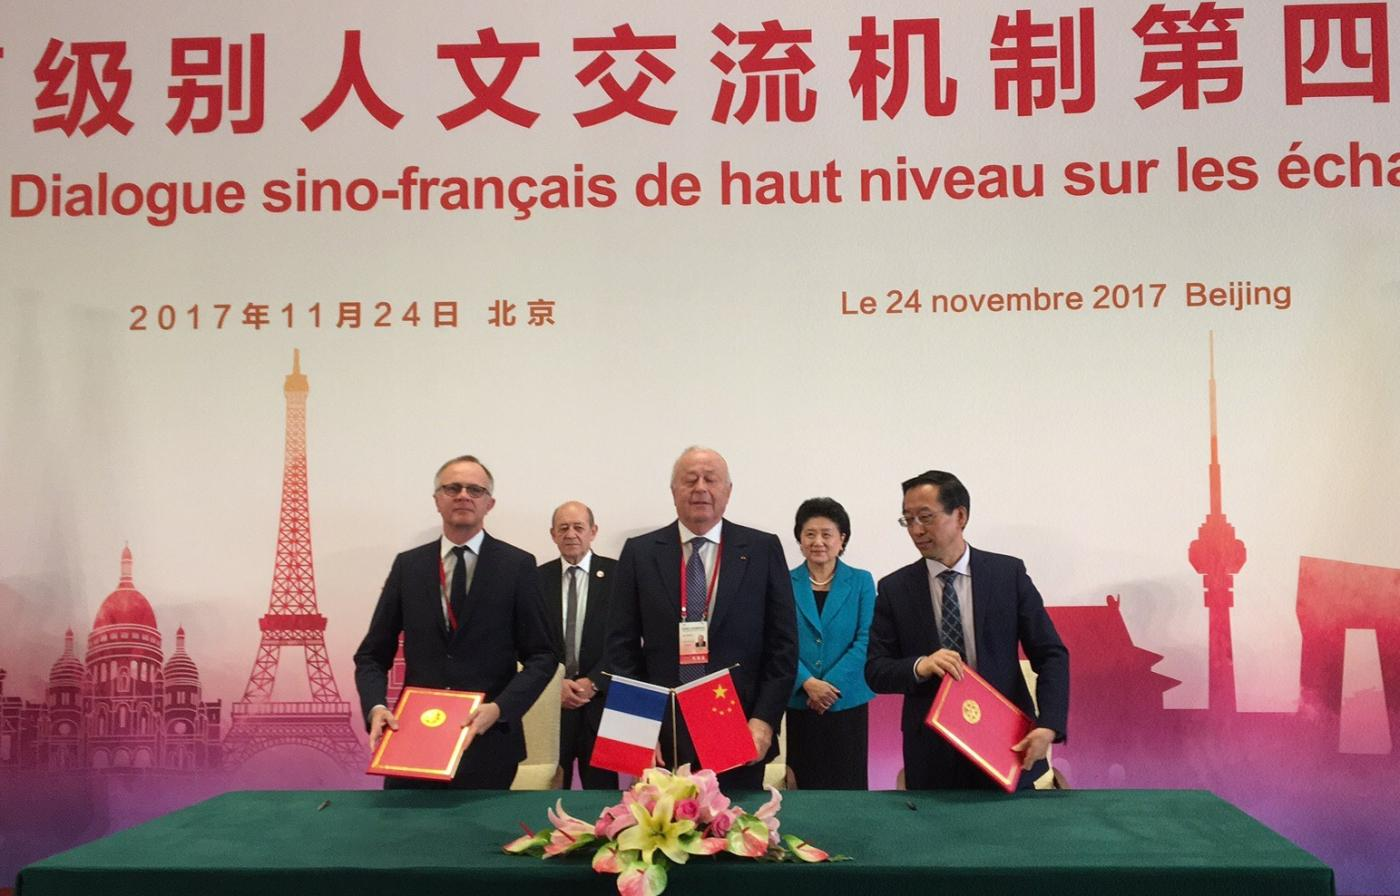 Signature G4 Chine - Réseau international des instituts Pasteur